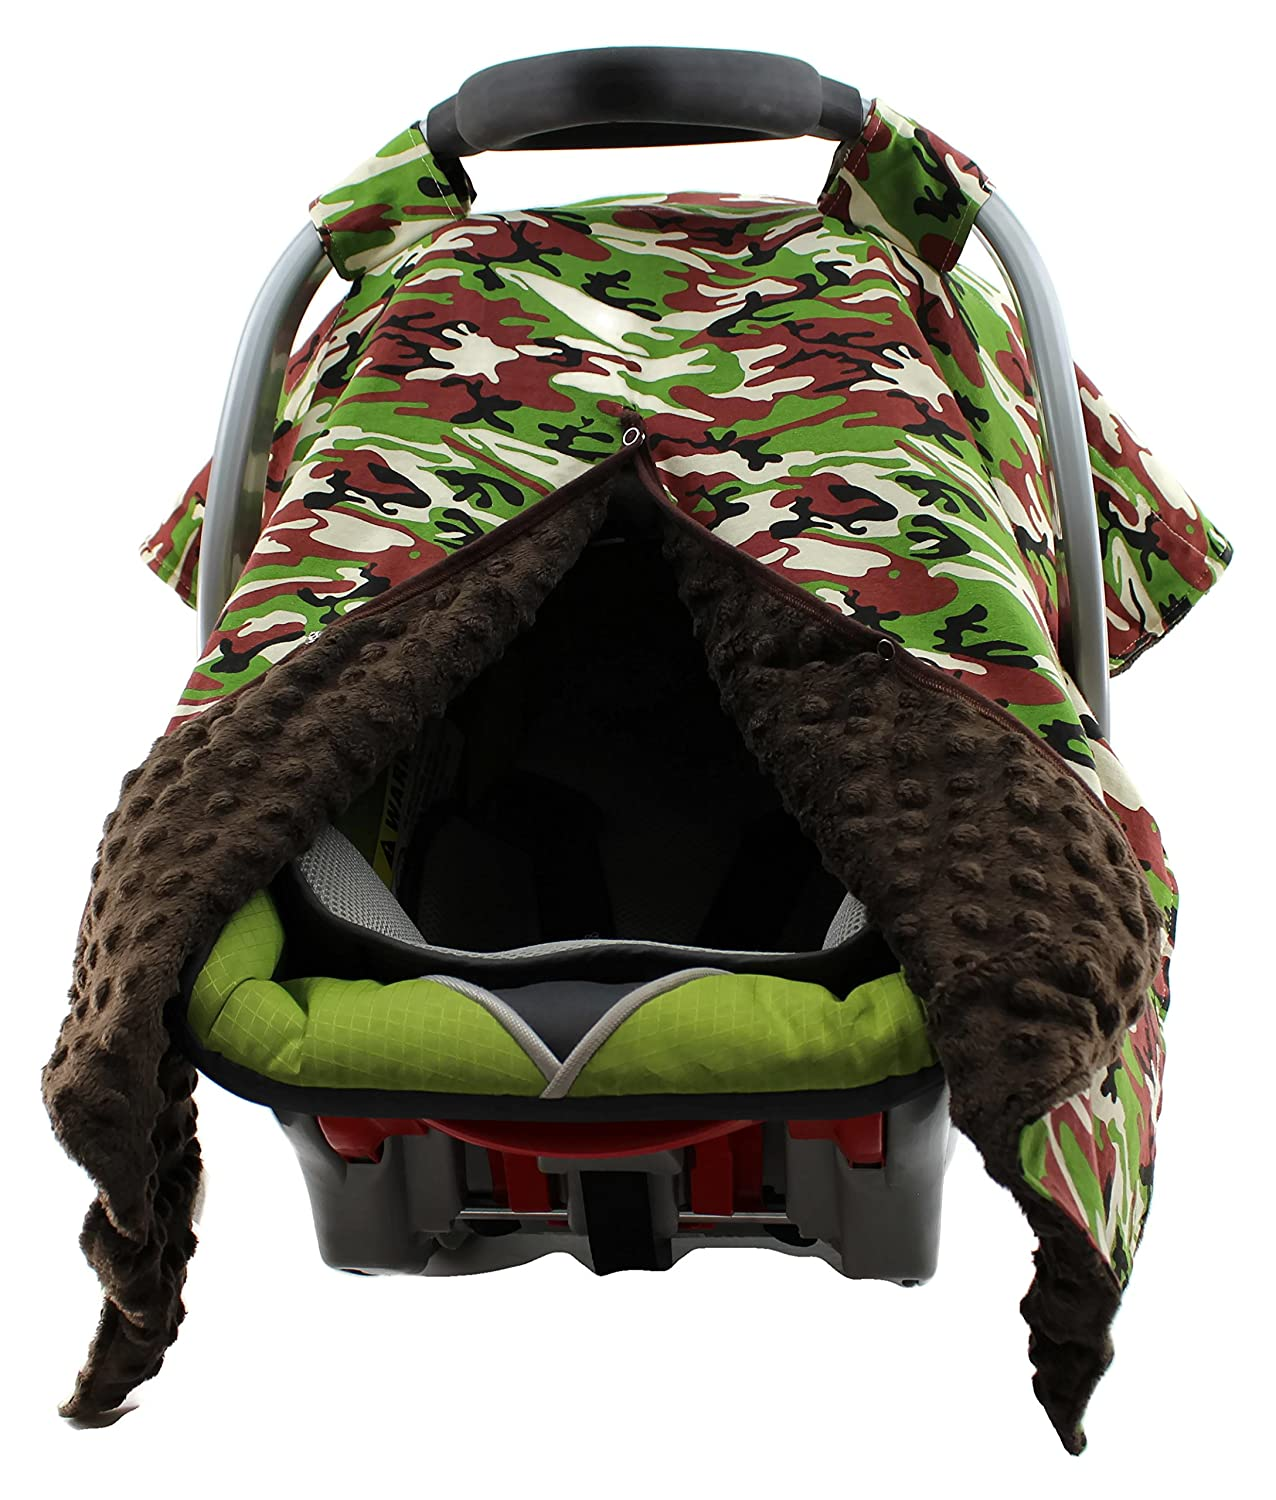 100% True Baby Infant Car Seat Cover And Hood Cover Mossy Oak Camo And Brown Minky Car Safety Seats